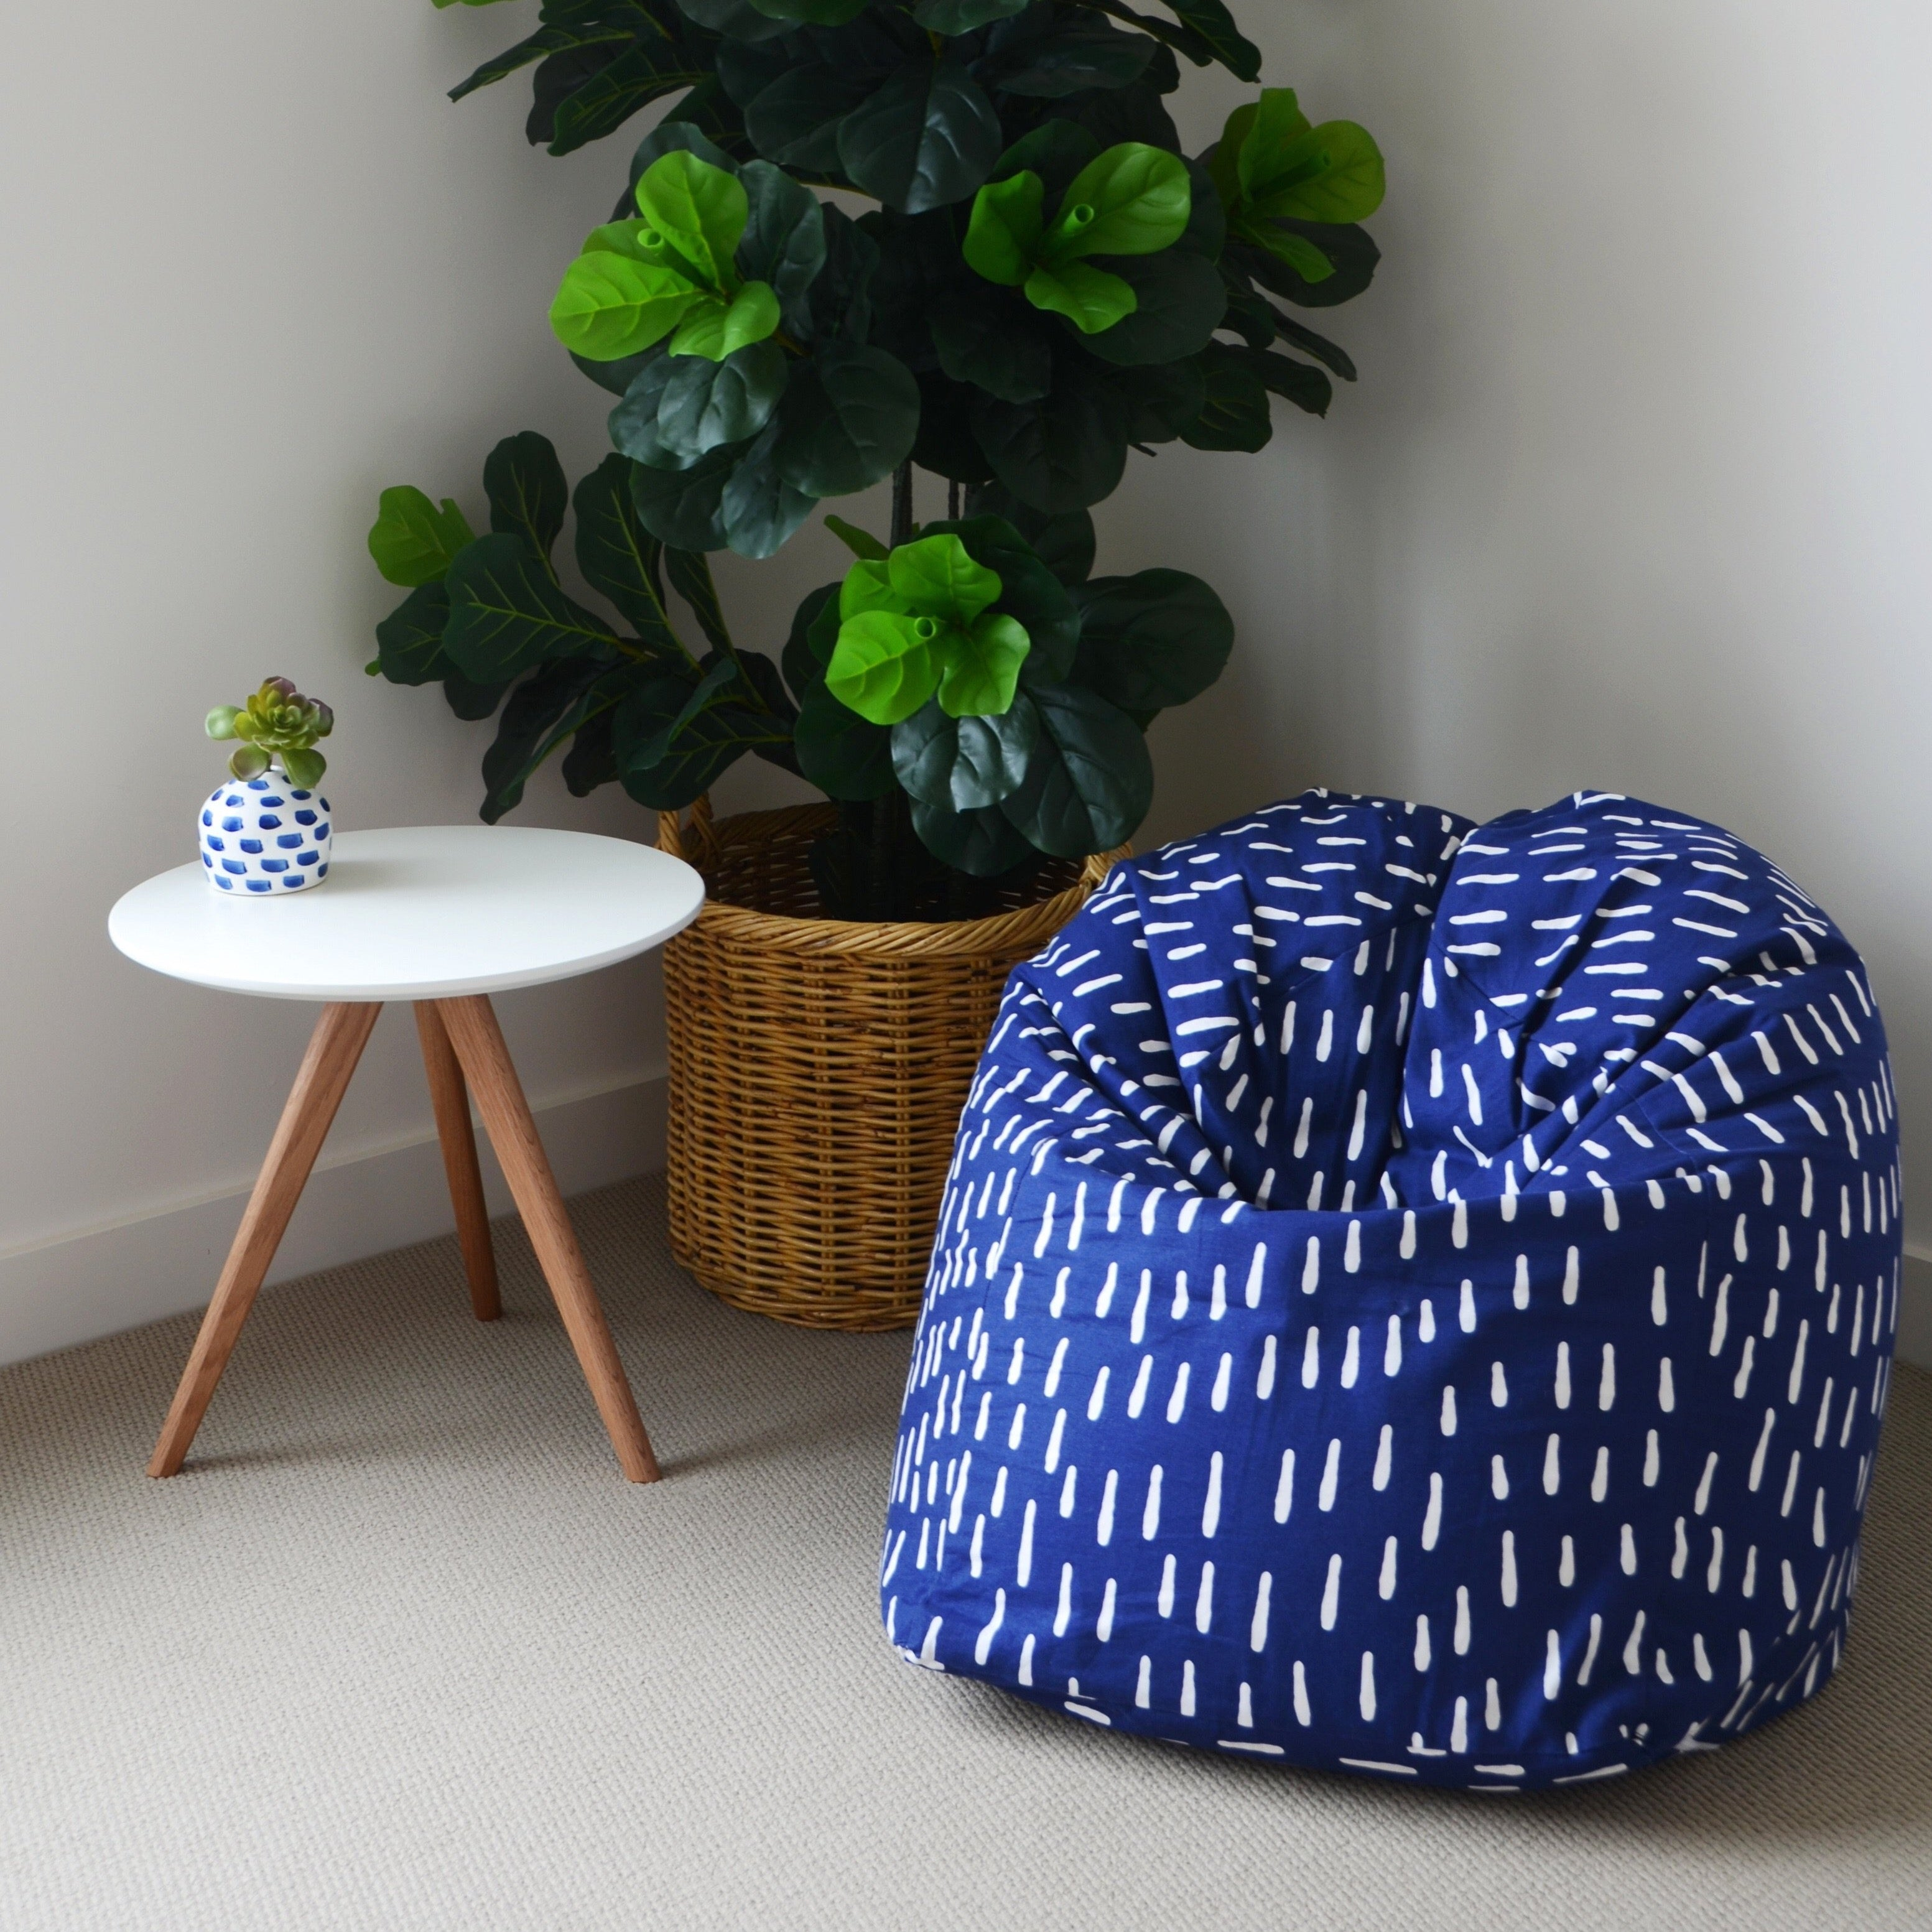 Raindrops Bean Bag - Indigo Blue